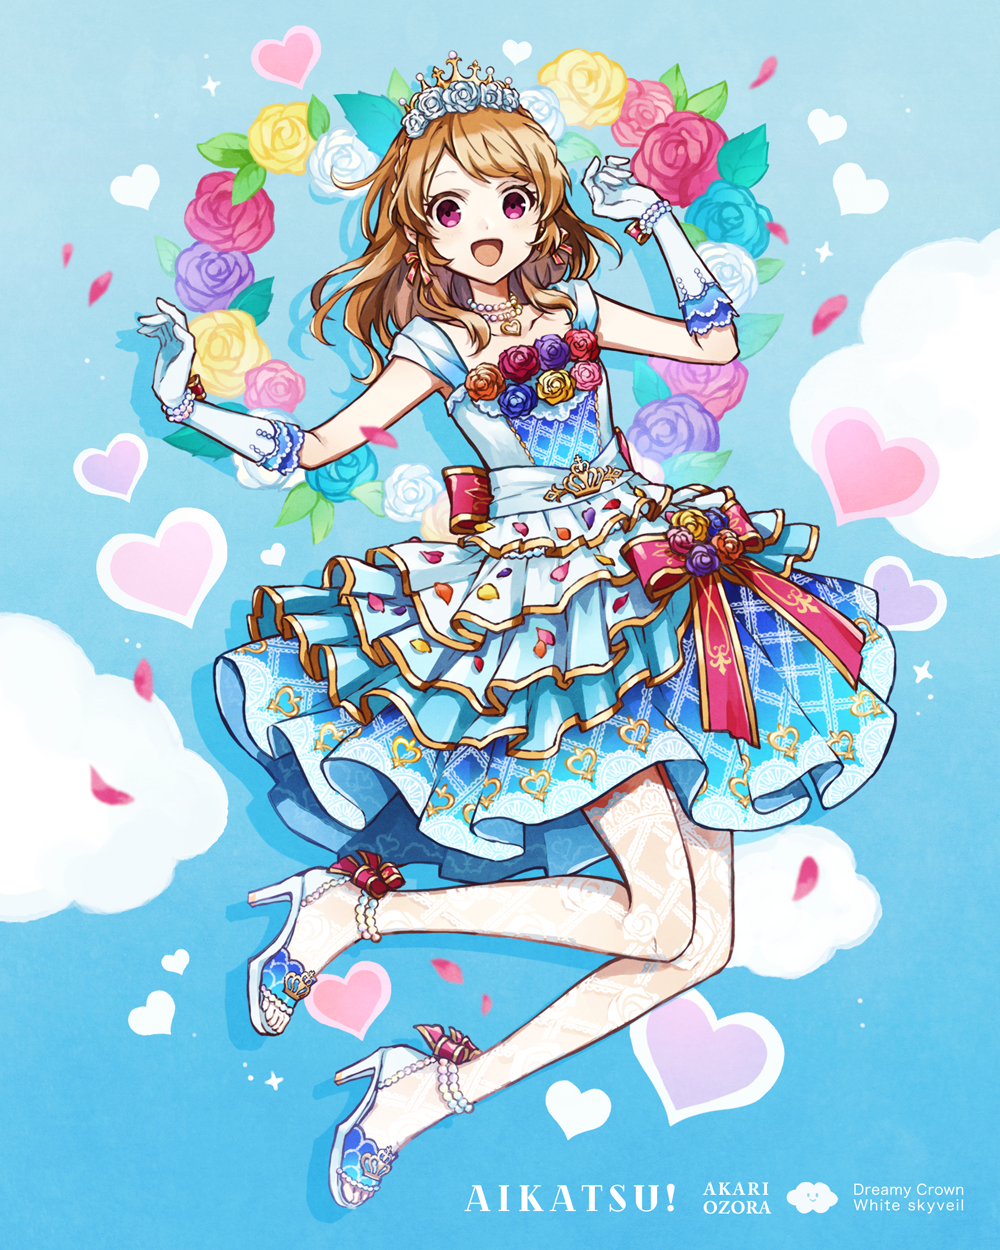 1girl :d aikatsu! aikatsu!_(series) blue_background blue_dress blue_flower blue_rose bow bow_earrings braid brown_hair brown_rose buzz character_name collarbone commentary_request copyright_name dress elbow_gloves floral_background flower full_body gloves hair_flower hair_ornament heart high_heels highres layered_dress long_hair oozora_akari open_mouth petals pink_flower pink_rose pleated_skirt purple_flower purple_rose red_bow red_flower red_rose rose see-through shoes skirt sleeveless sleeveless_dress smile solo thigh-highs tiara white_flower white_footwear white_gloves white_legwear white_rose yellow_flower yellow_rose